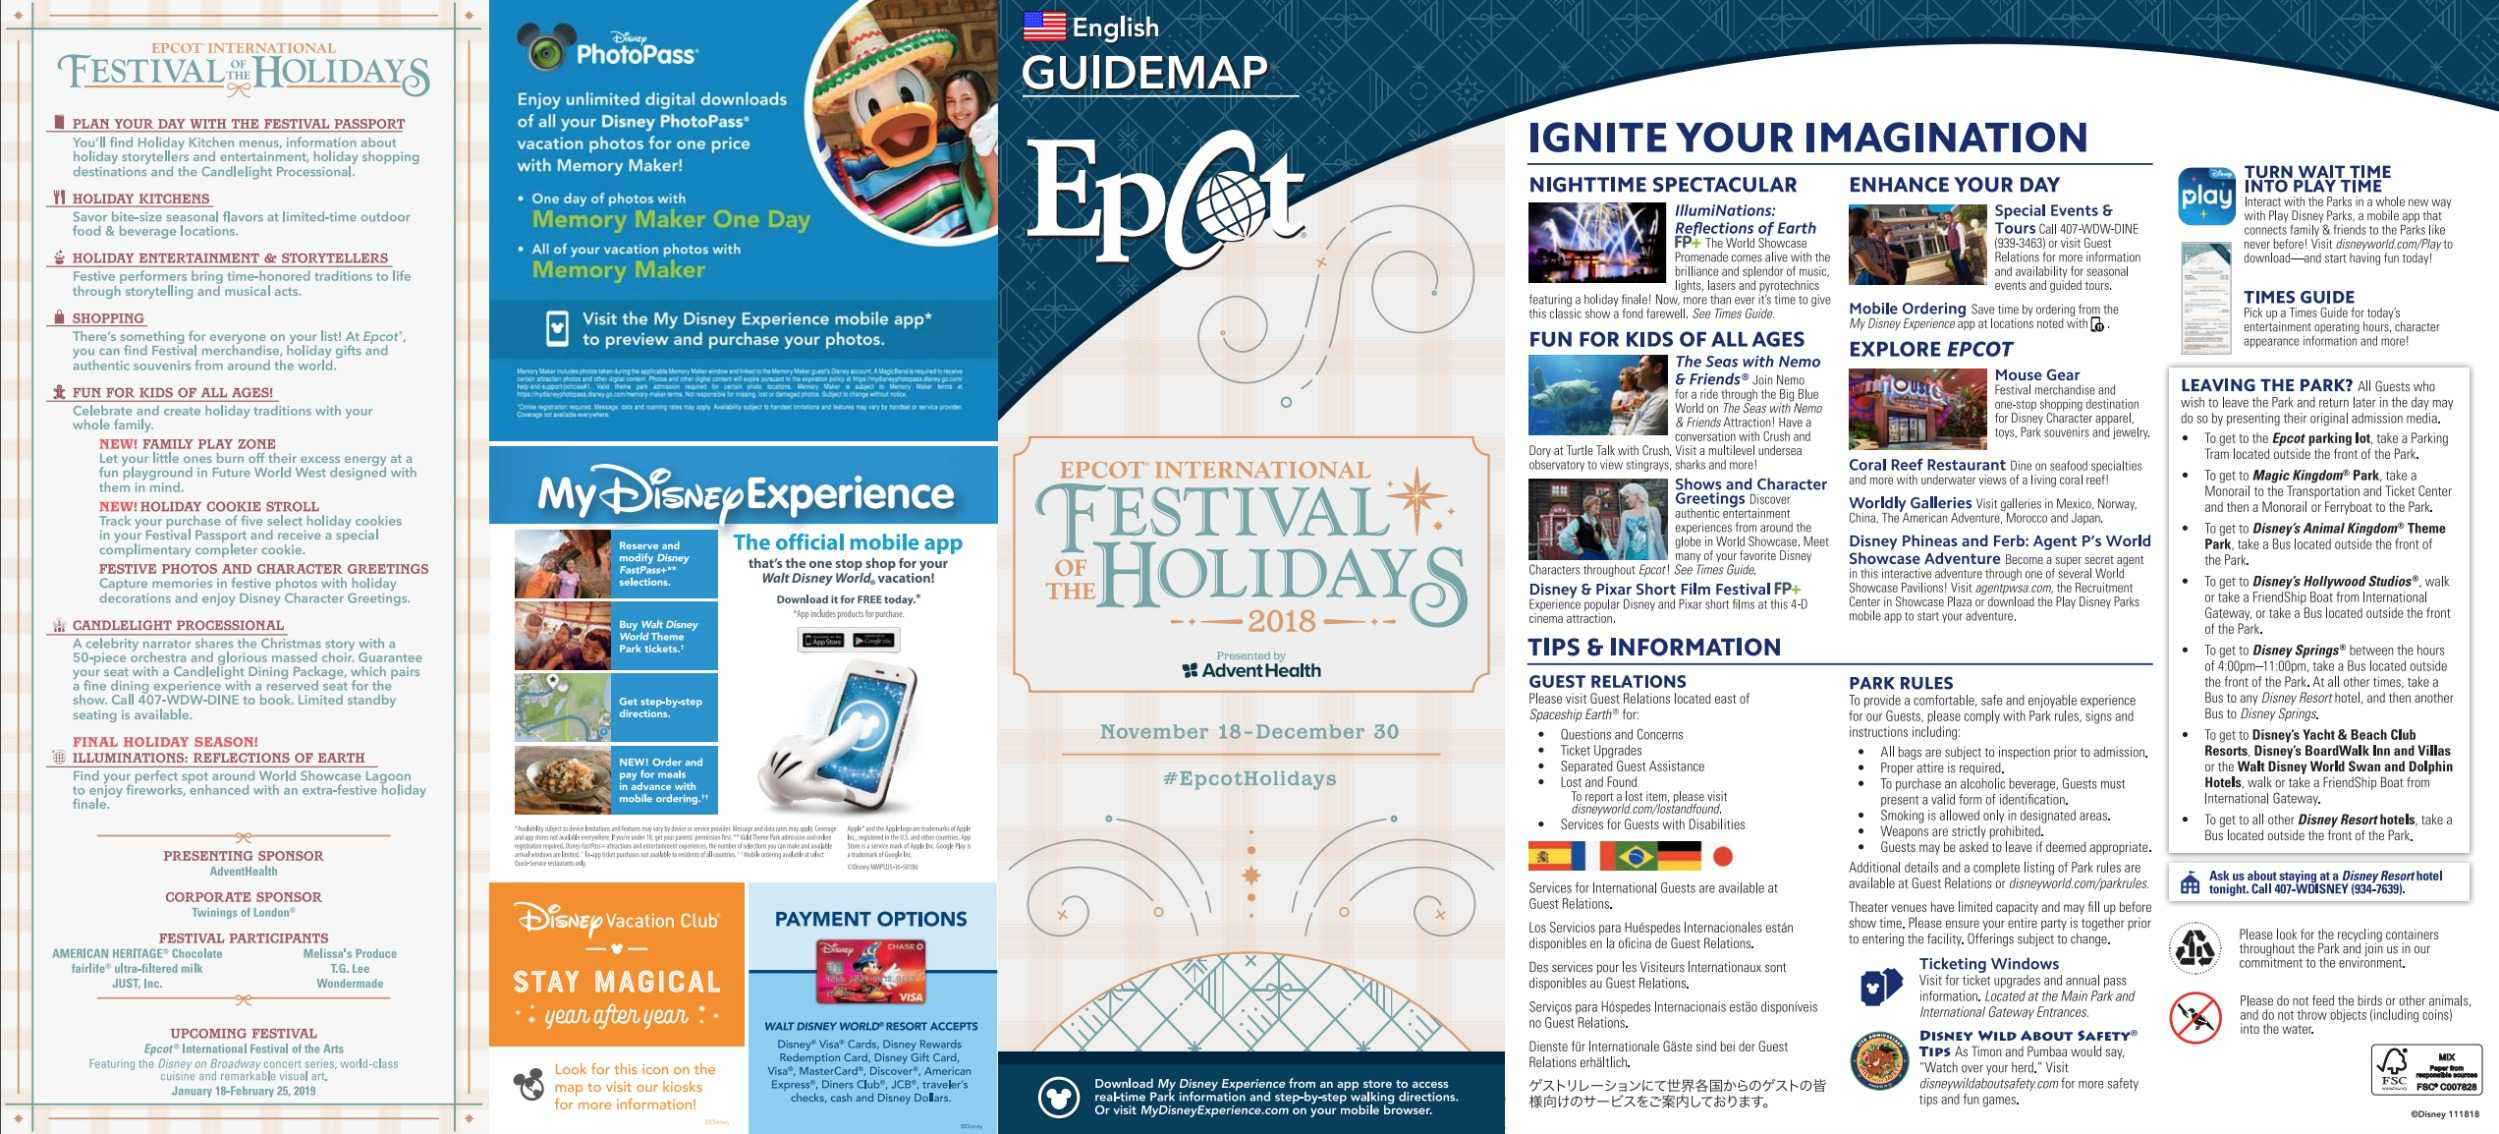 Epcot International Festival Of The Holidays Map 2018 At Walt Disney